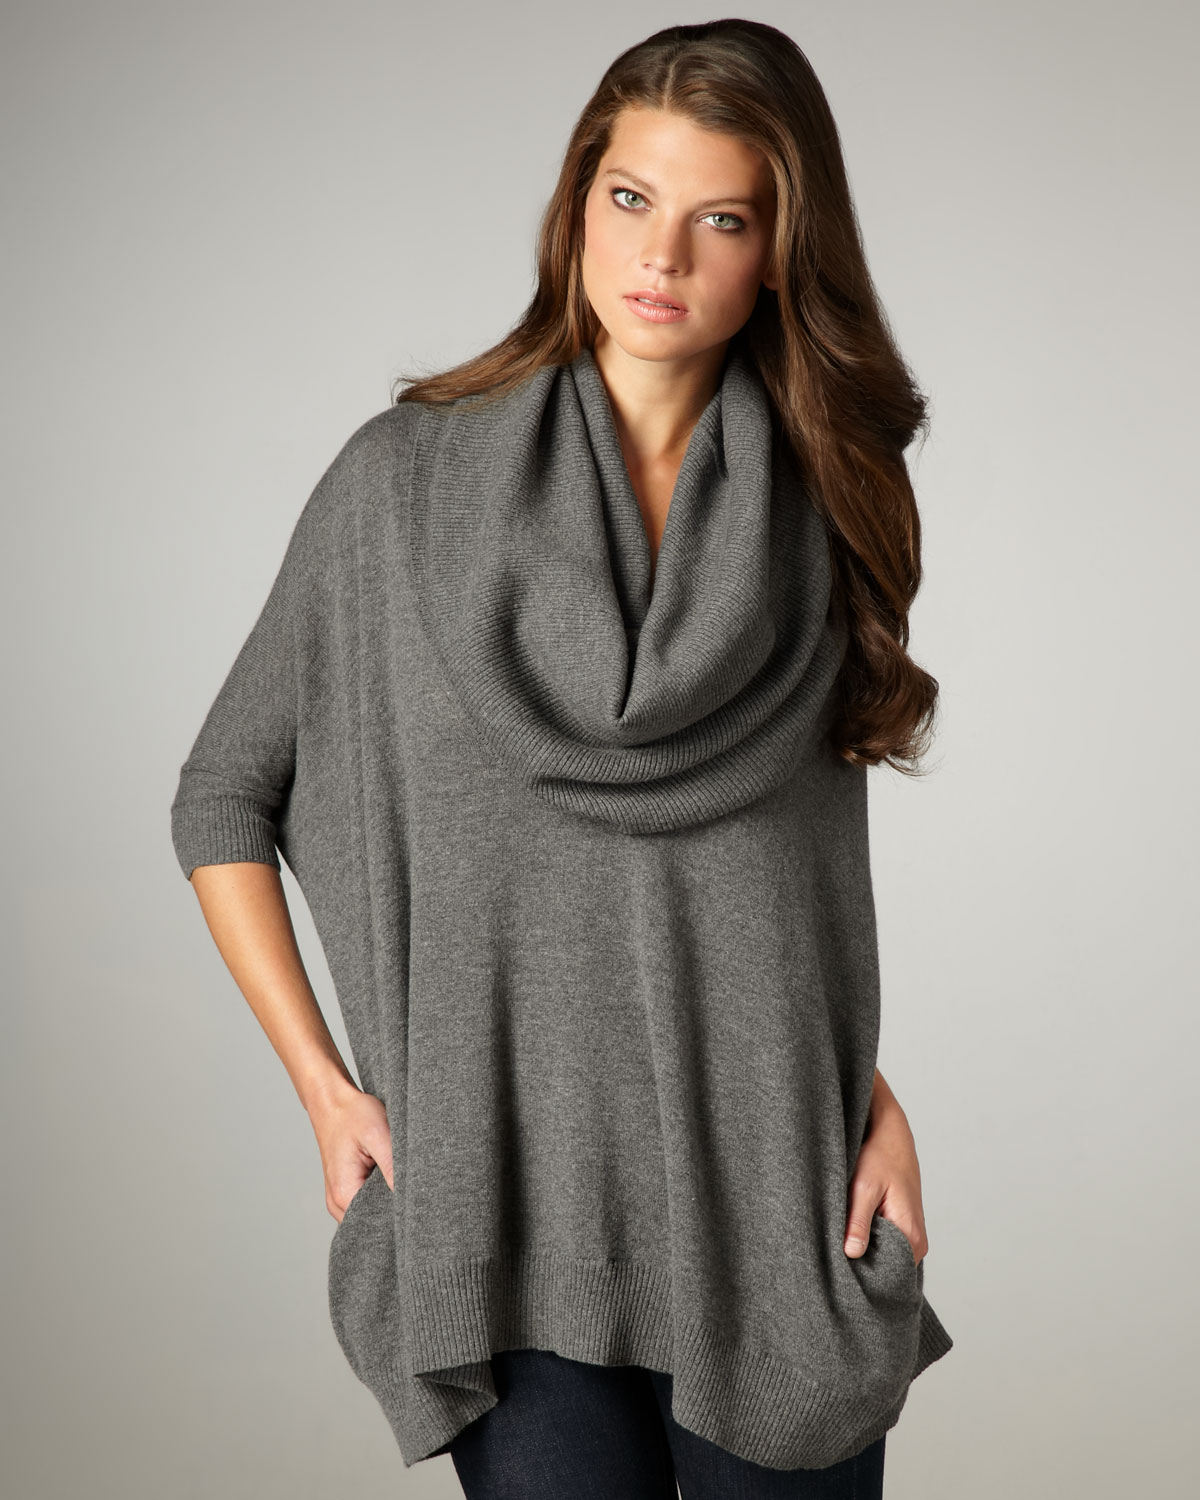 Autumn cashmere Cowl-neck Sweater in Gray | Lyst